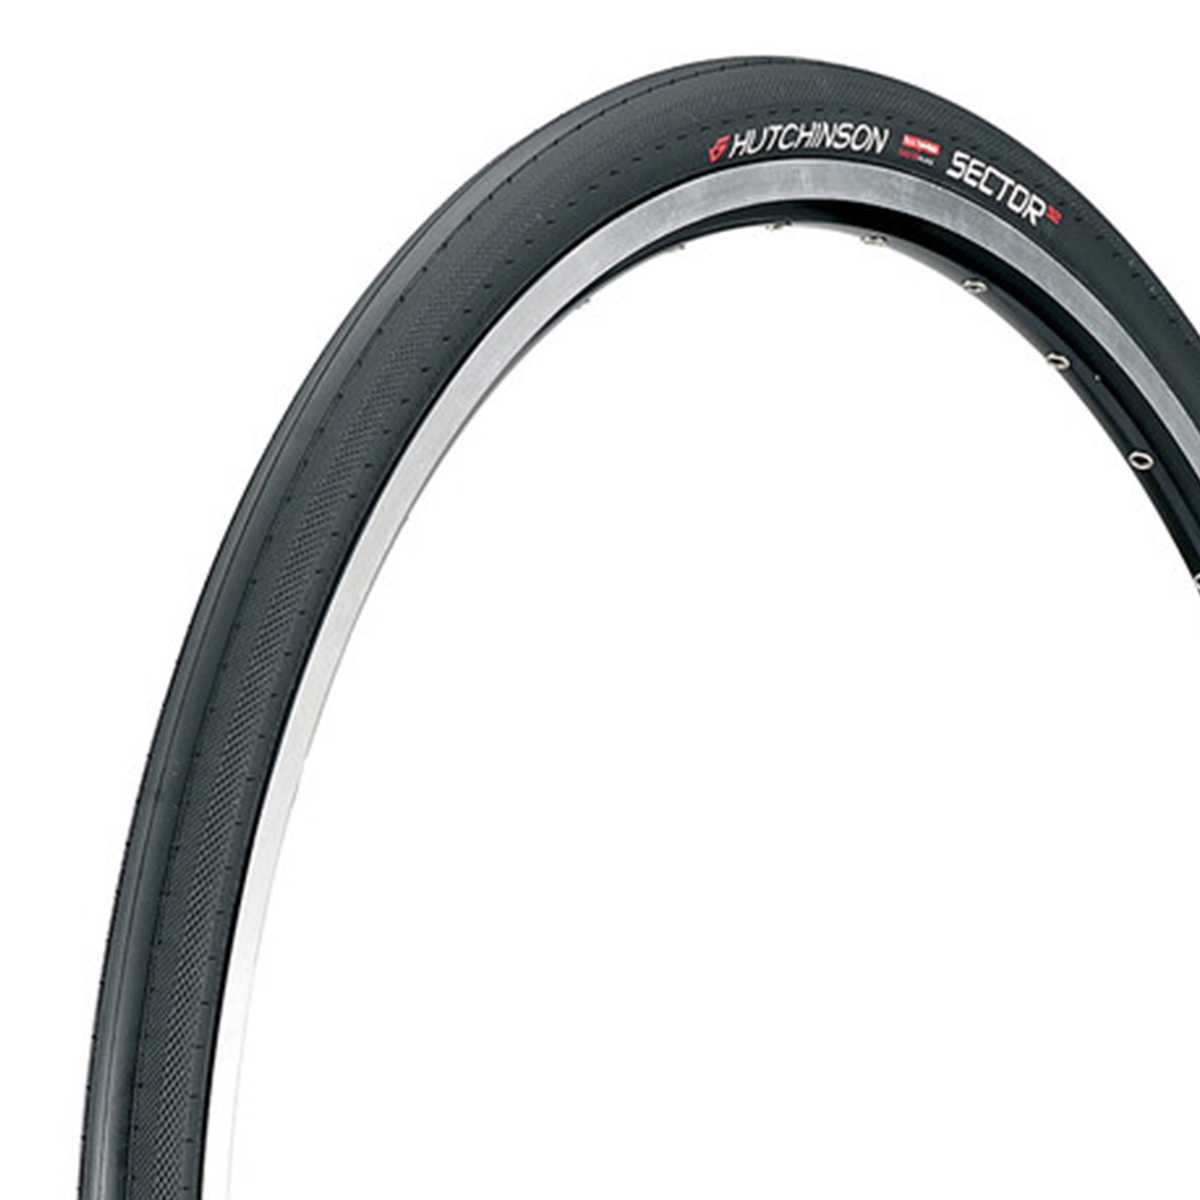 Hutchinson Sector 32 TLR Folding Road Tyre - 700c